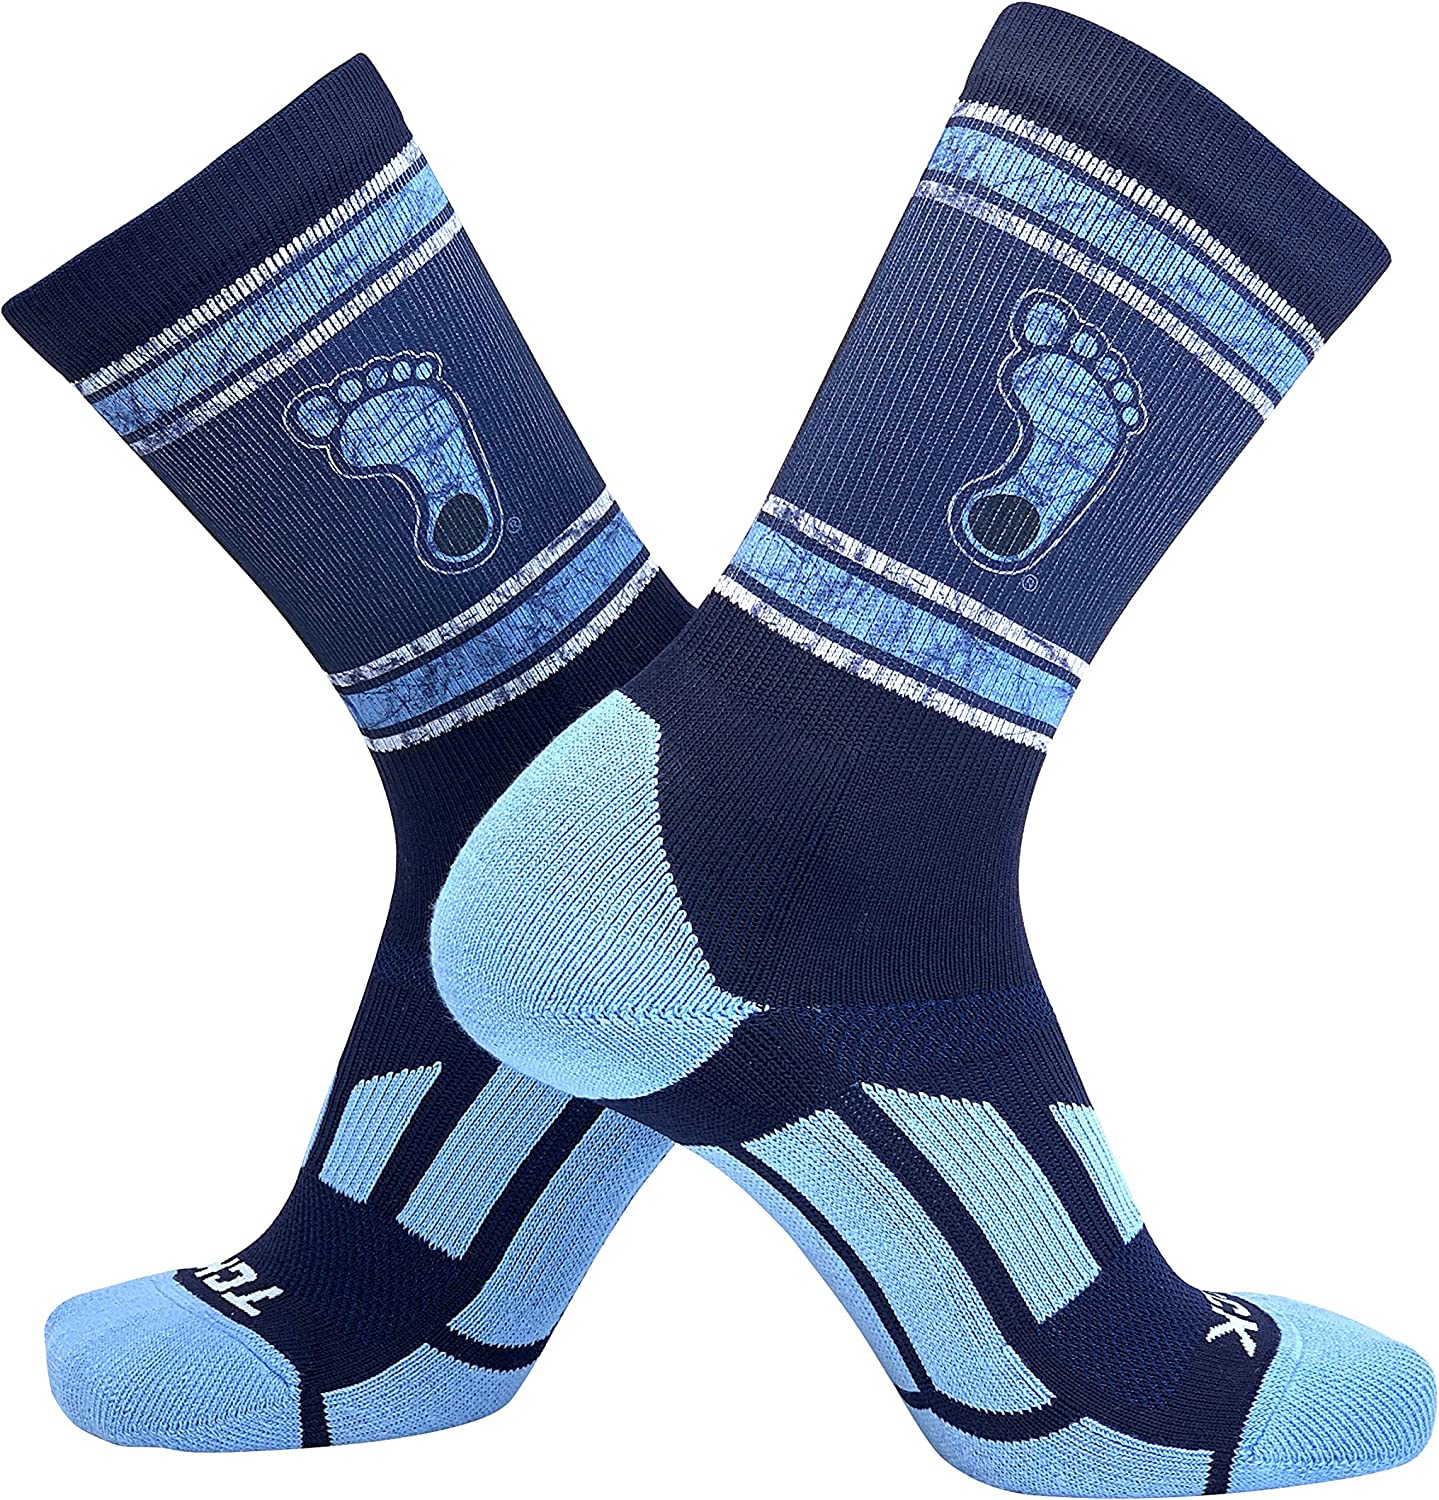 North Carolina Tar Heels Socks Woodland Camo Crew